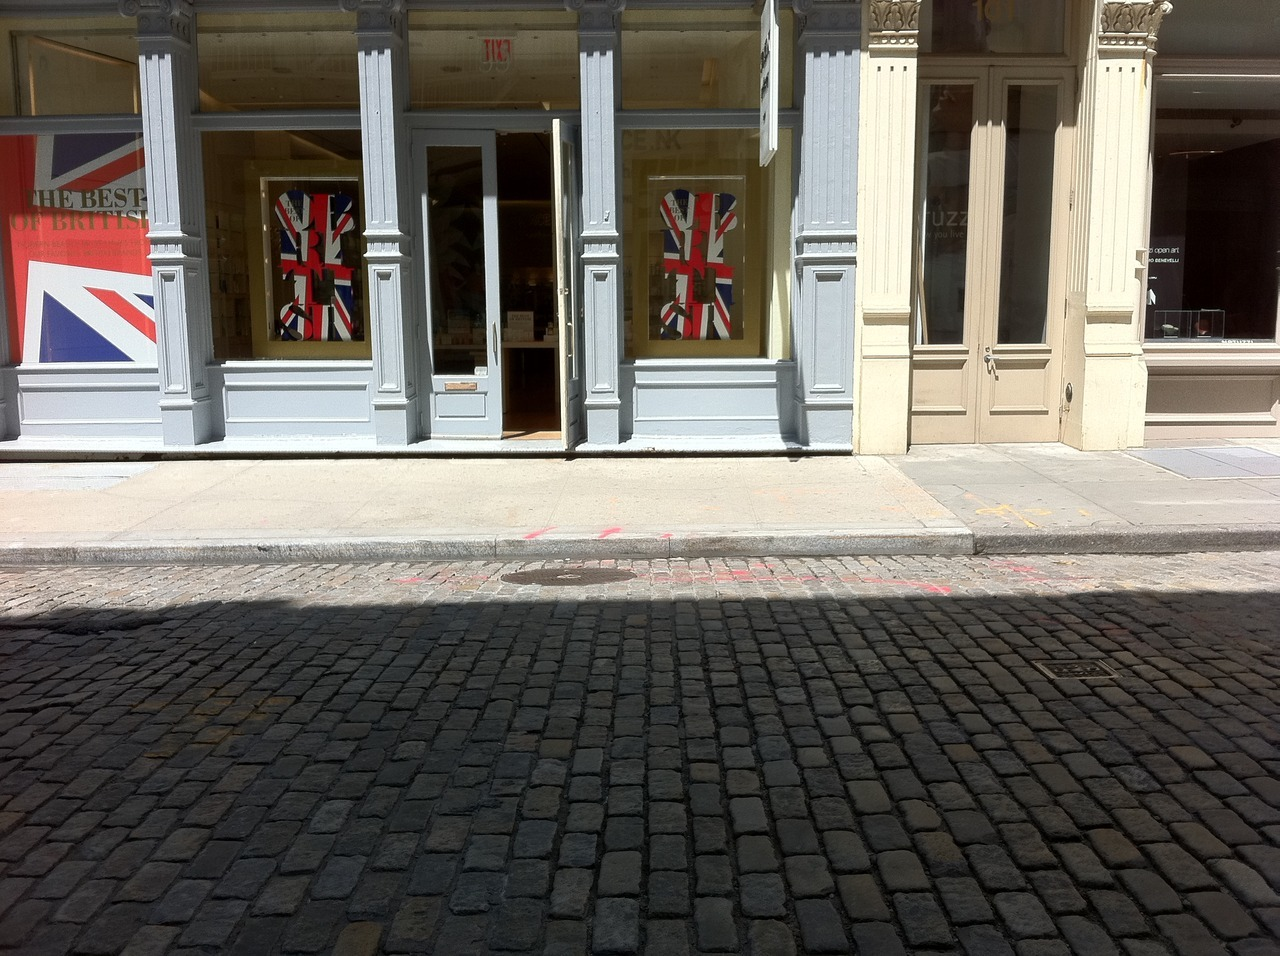 celebrating the queen's diamond jubilee in soho, manhattan